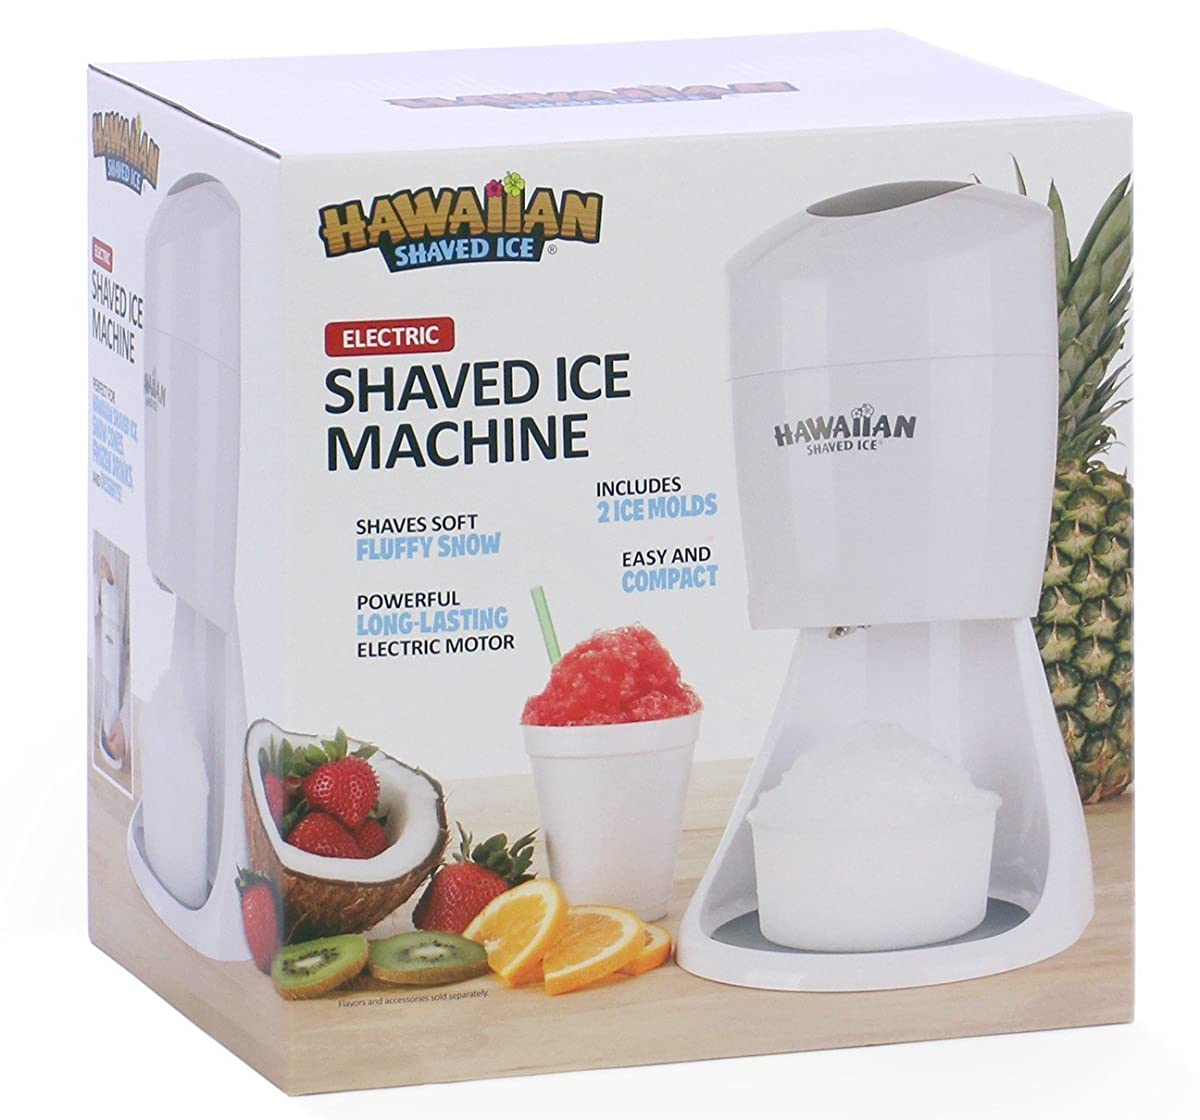 Hawaiian Shaved Ice S900A Electric Shaved Ice Machine